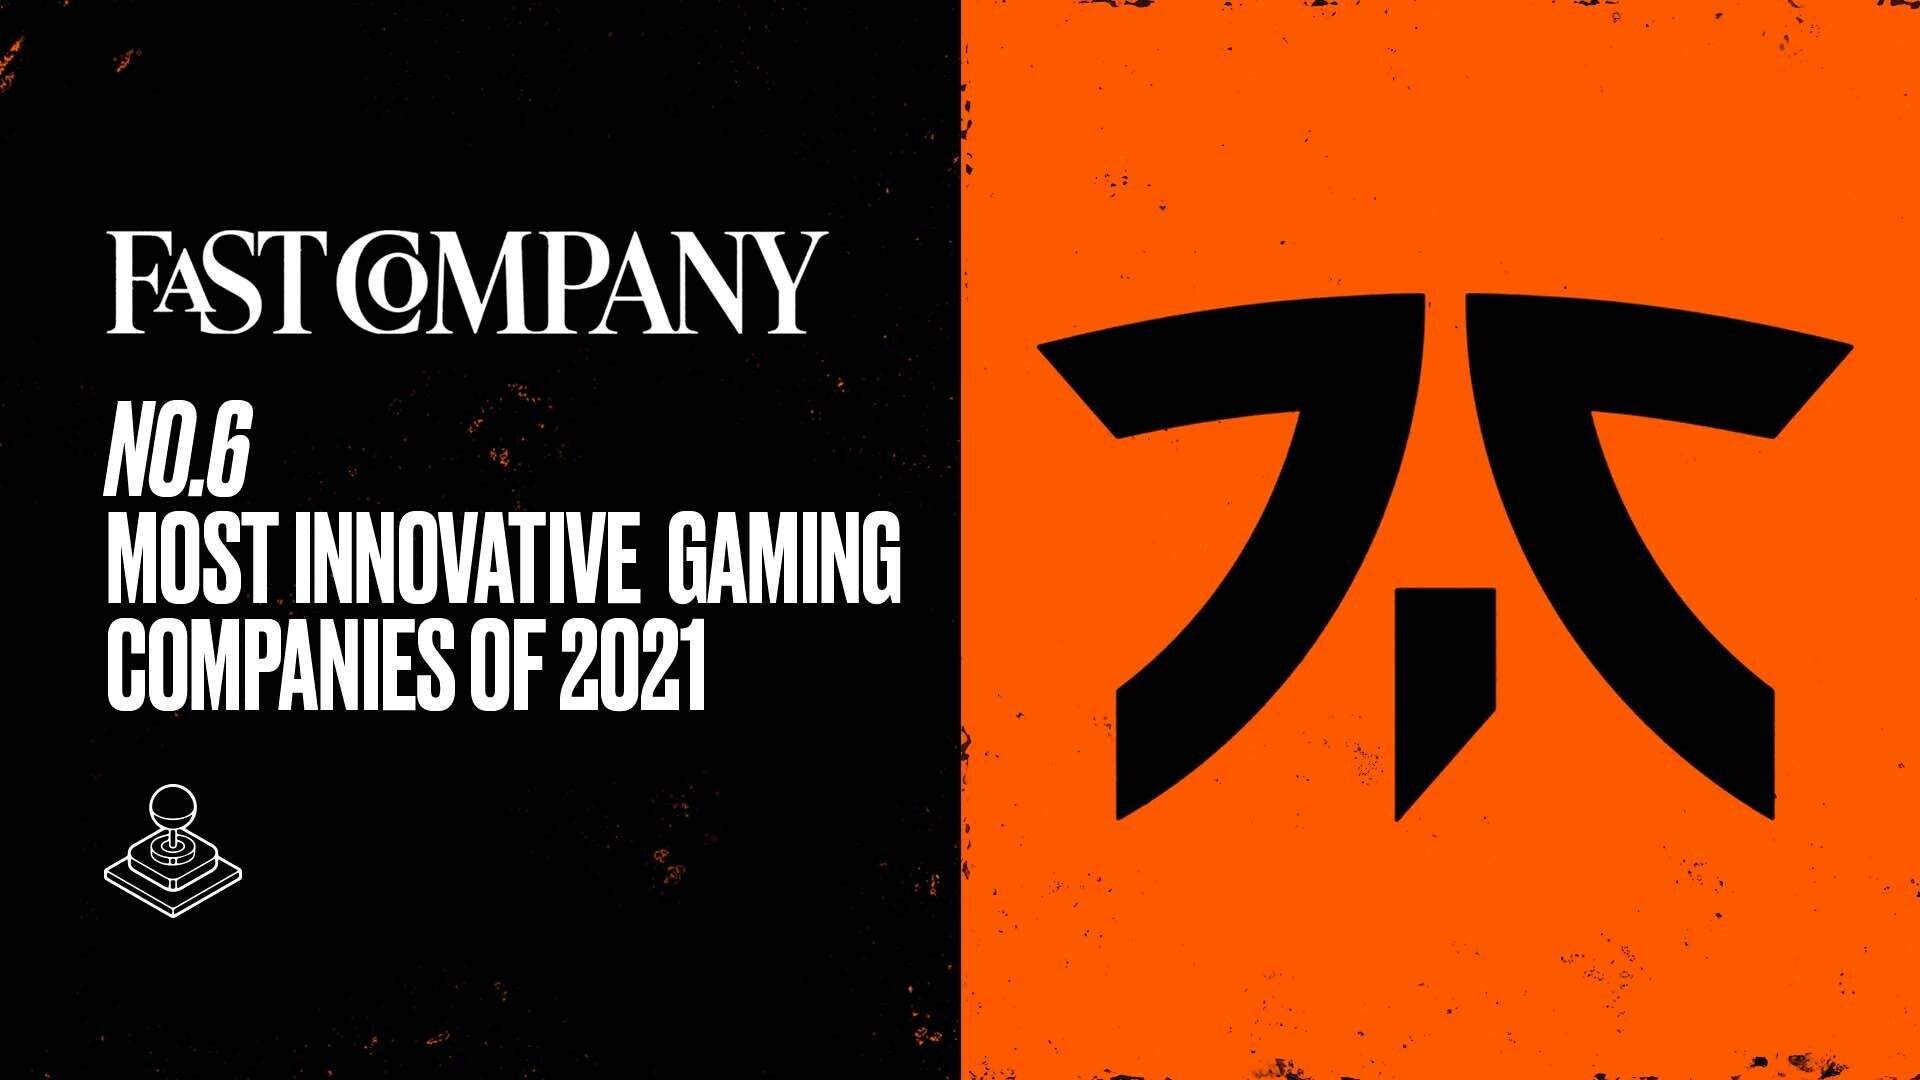 Fast Company ranks Fnatic in the most innovative gaming firms